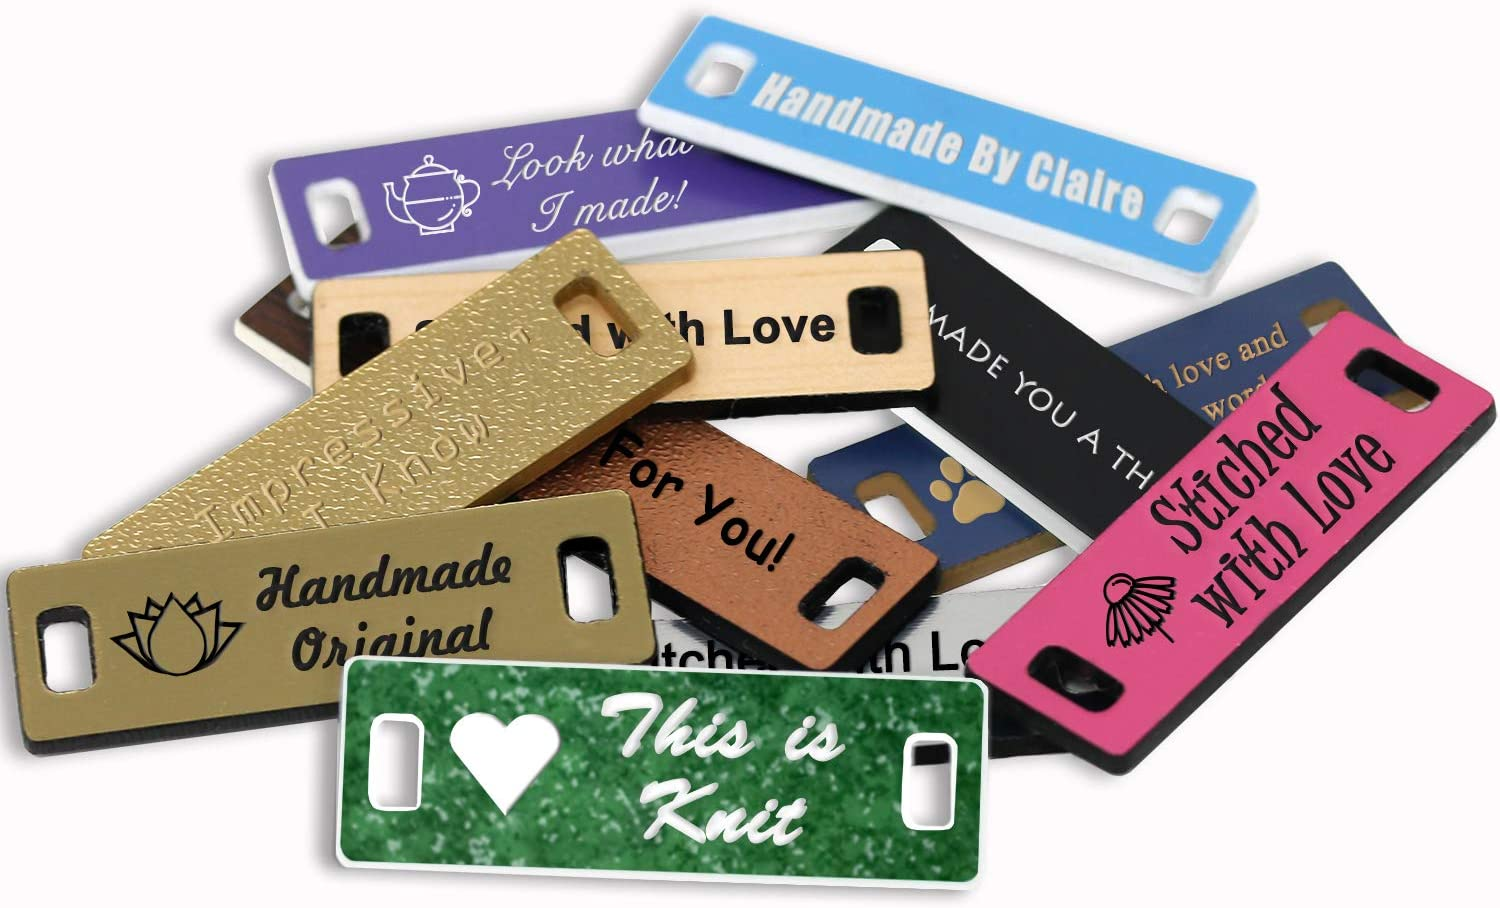 OFFicial shop LHS Limited price sale Engraving Personalized Hand Made Tags Custom Engraved Verd